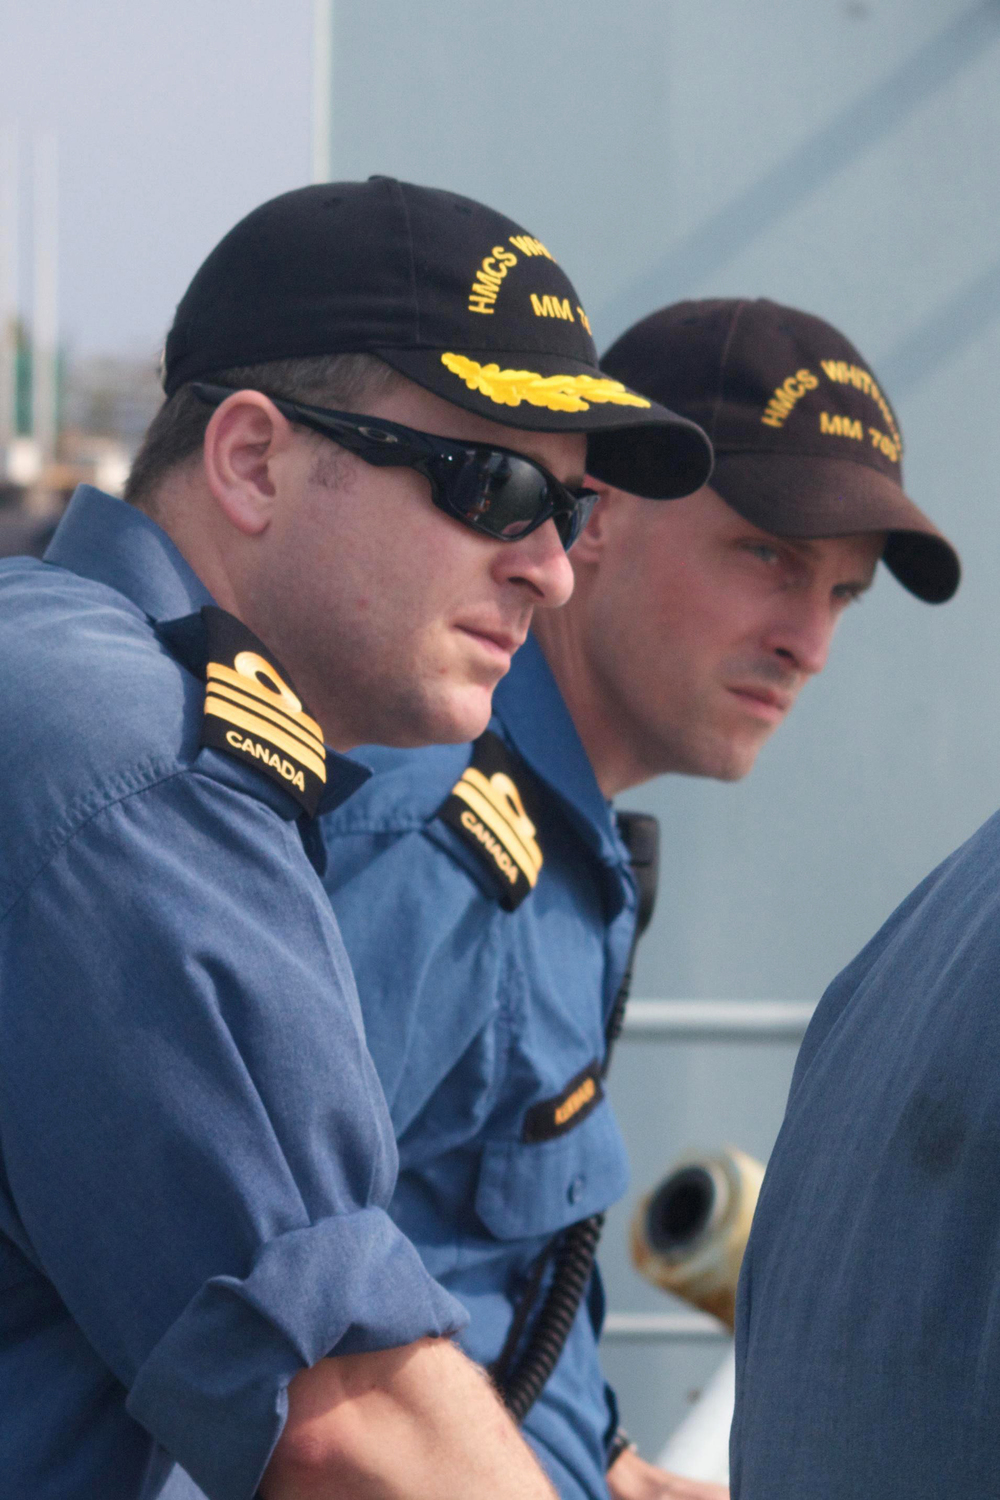 LCdr Christopher Rochon (left) oversees the line handling during an alongside, with the ship's XO, Lt Lucas Kenward, at Puerto Quetzal, Guatemala, on March 16, 2015. (MS. William Dennis, DND)